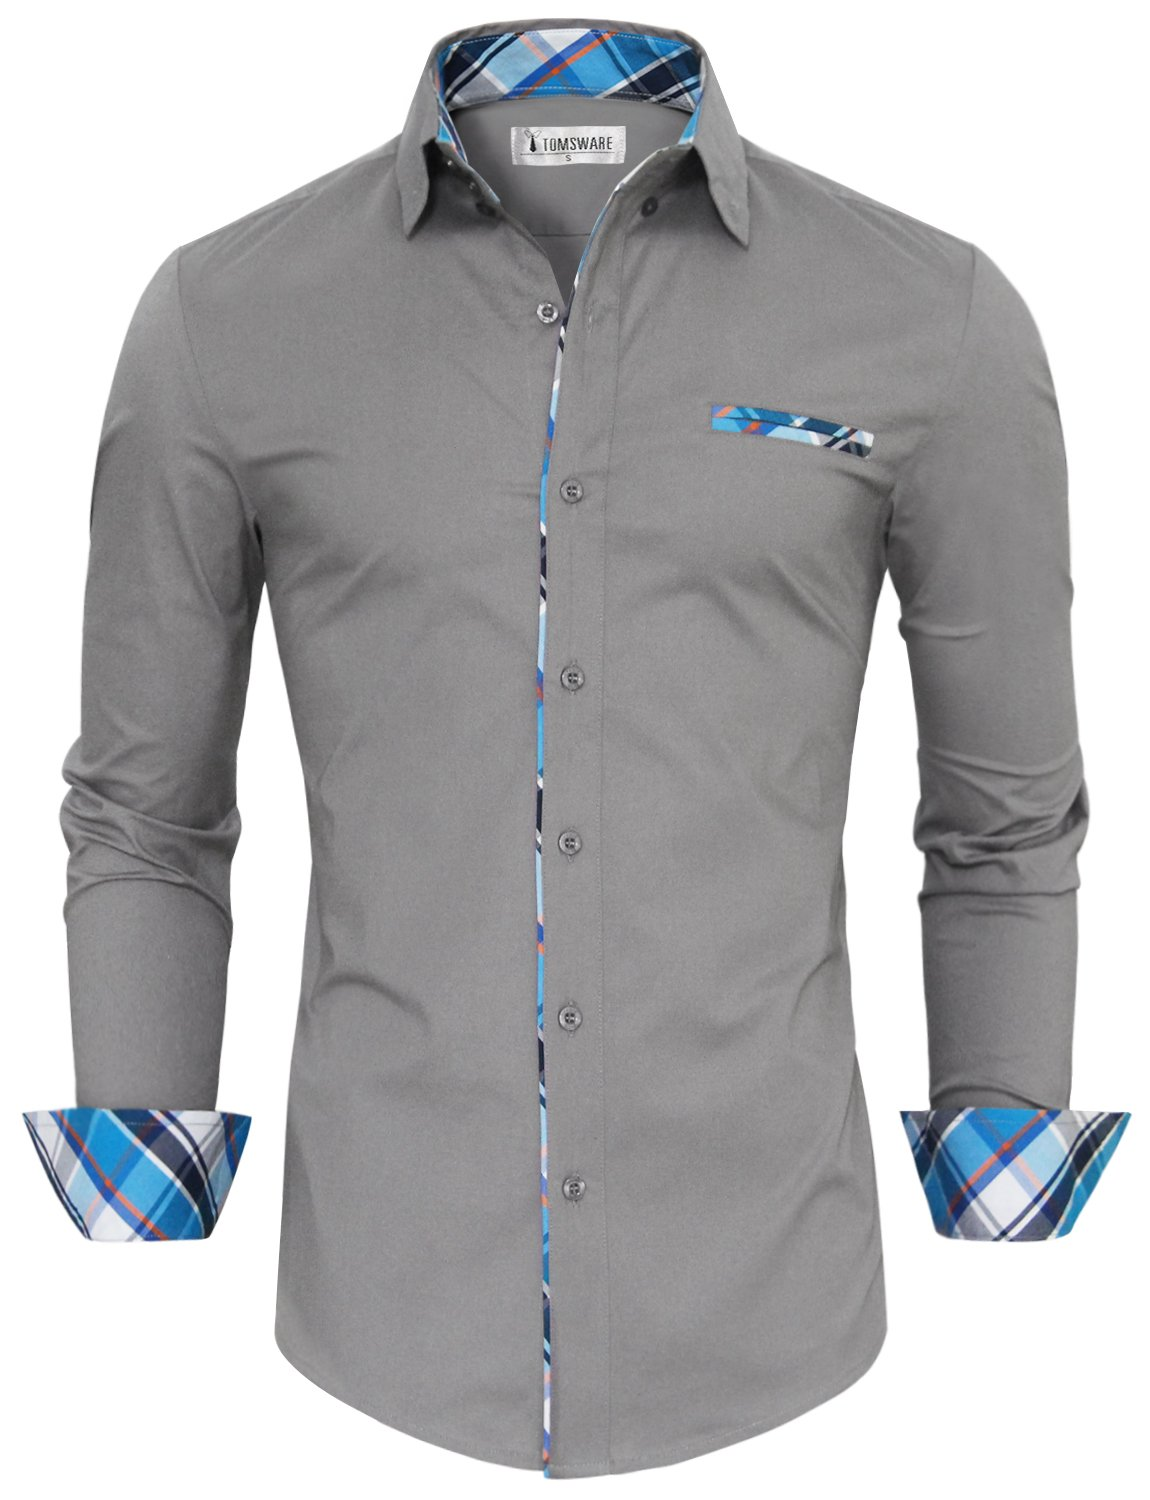 Tom's Ware Mens Premium Casual Inner Contrast Dress Shirt TWNMS310S-1-GRAY-L by Tom's Ware